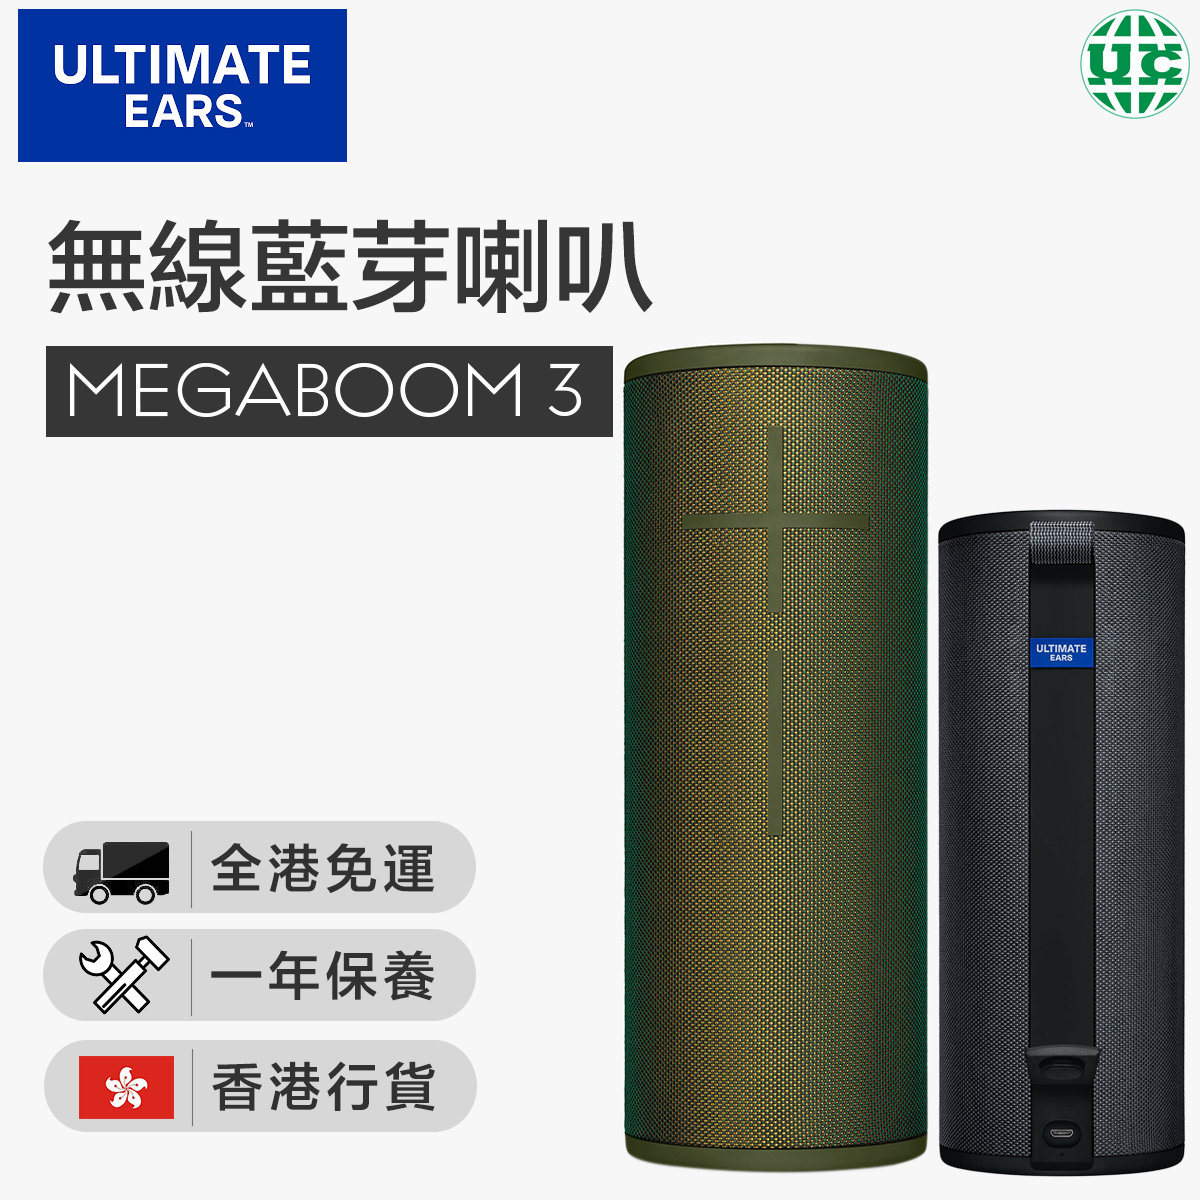 MEGABOOM 3 Wireless Bluetooth Speaker-green (Hong Kong licensed)